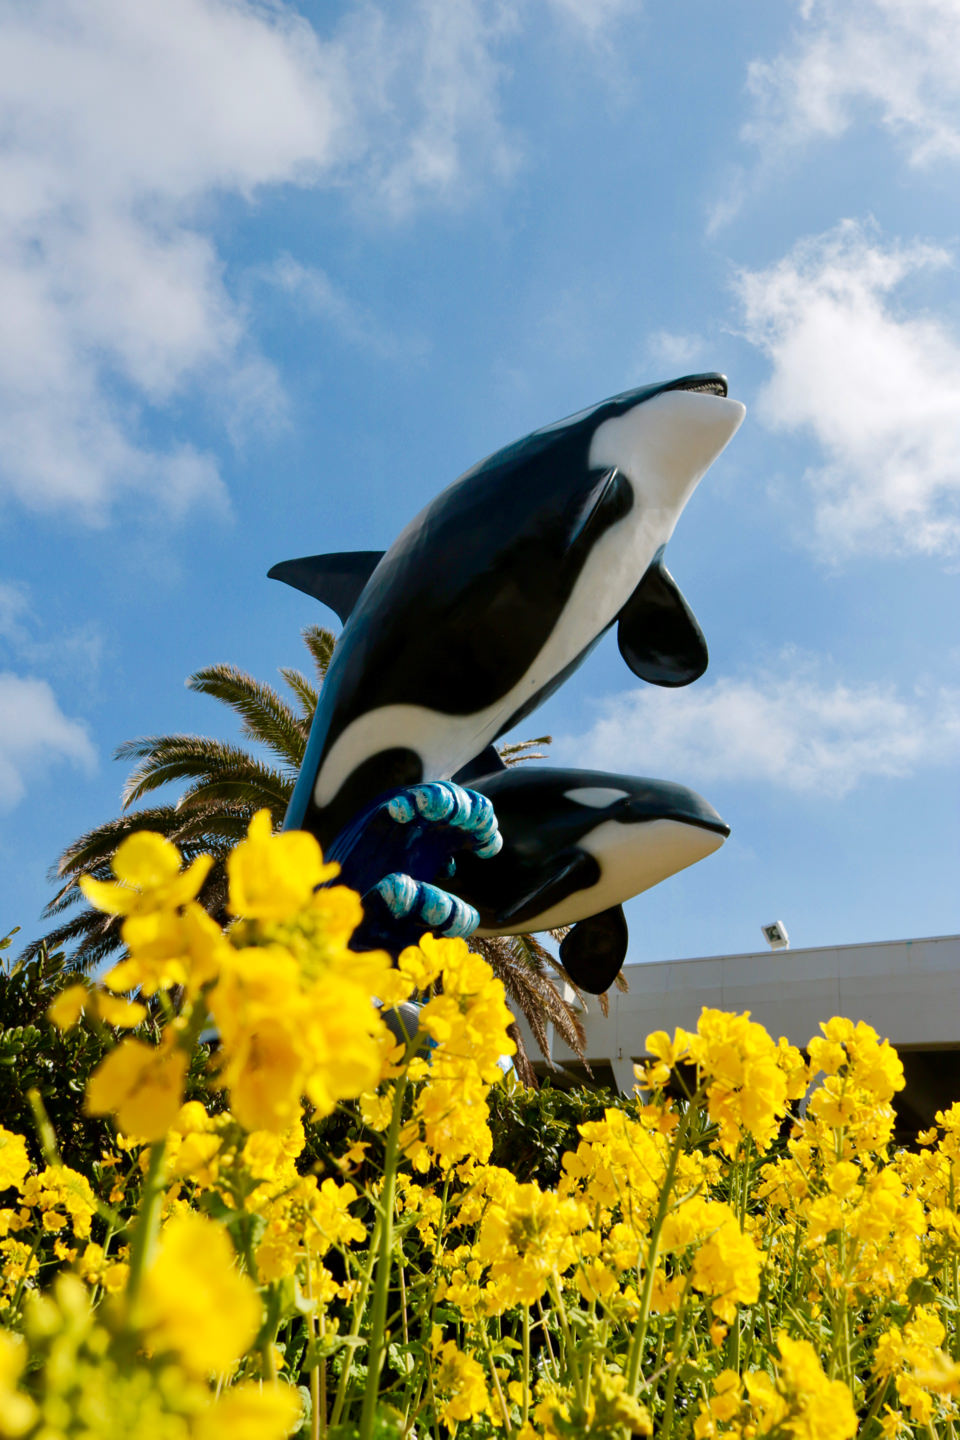 Canola flowers and killer whale statues at the entrance to Kamogawa Sea World